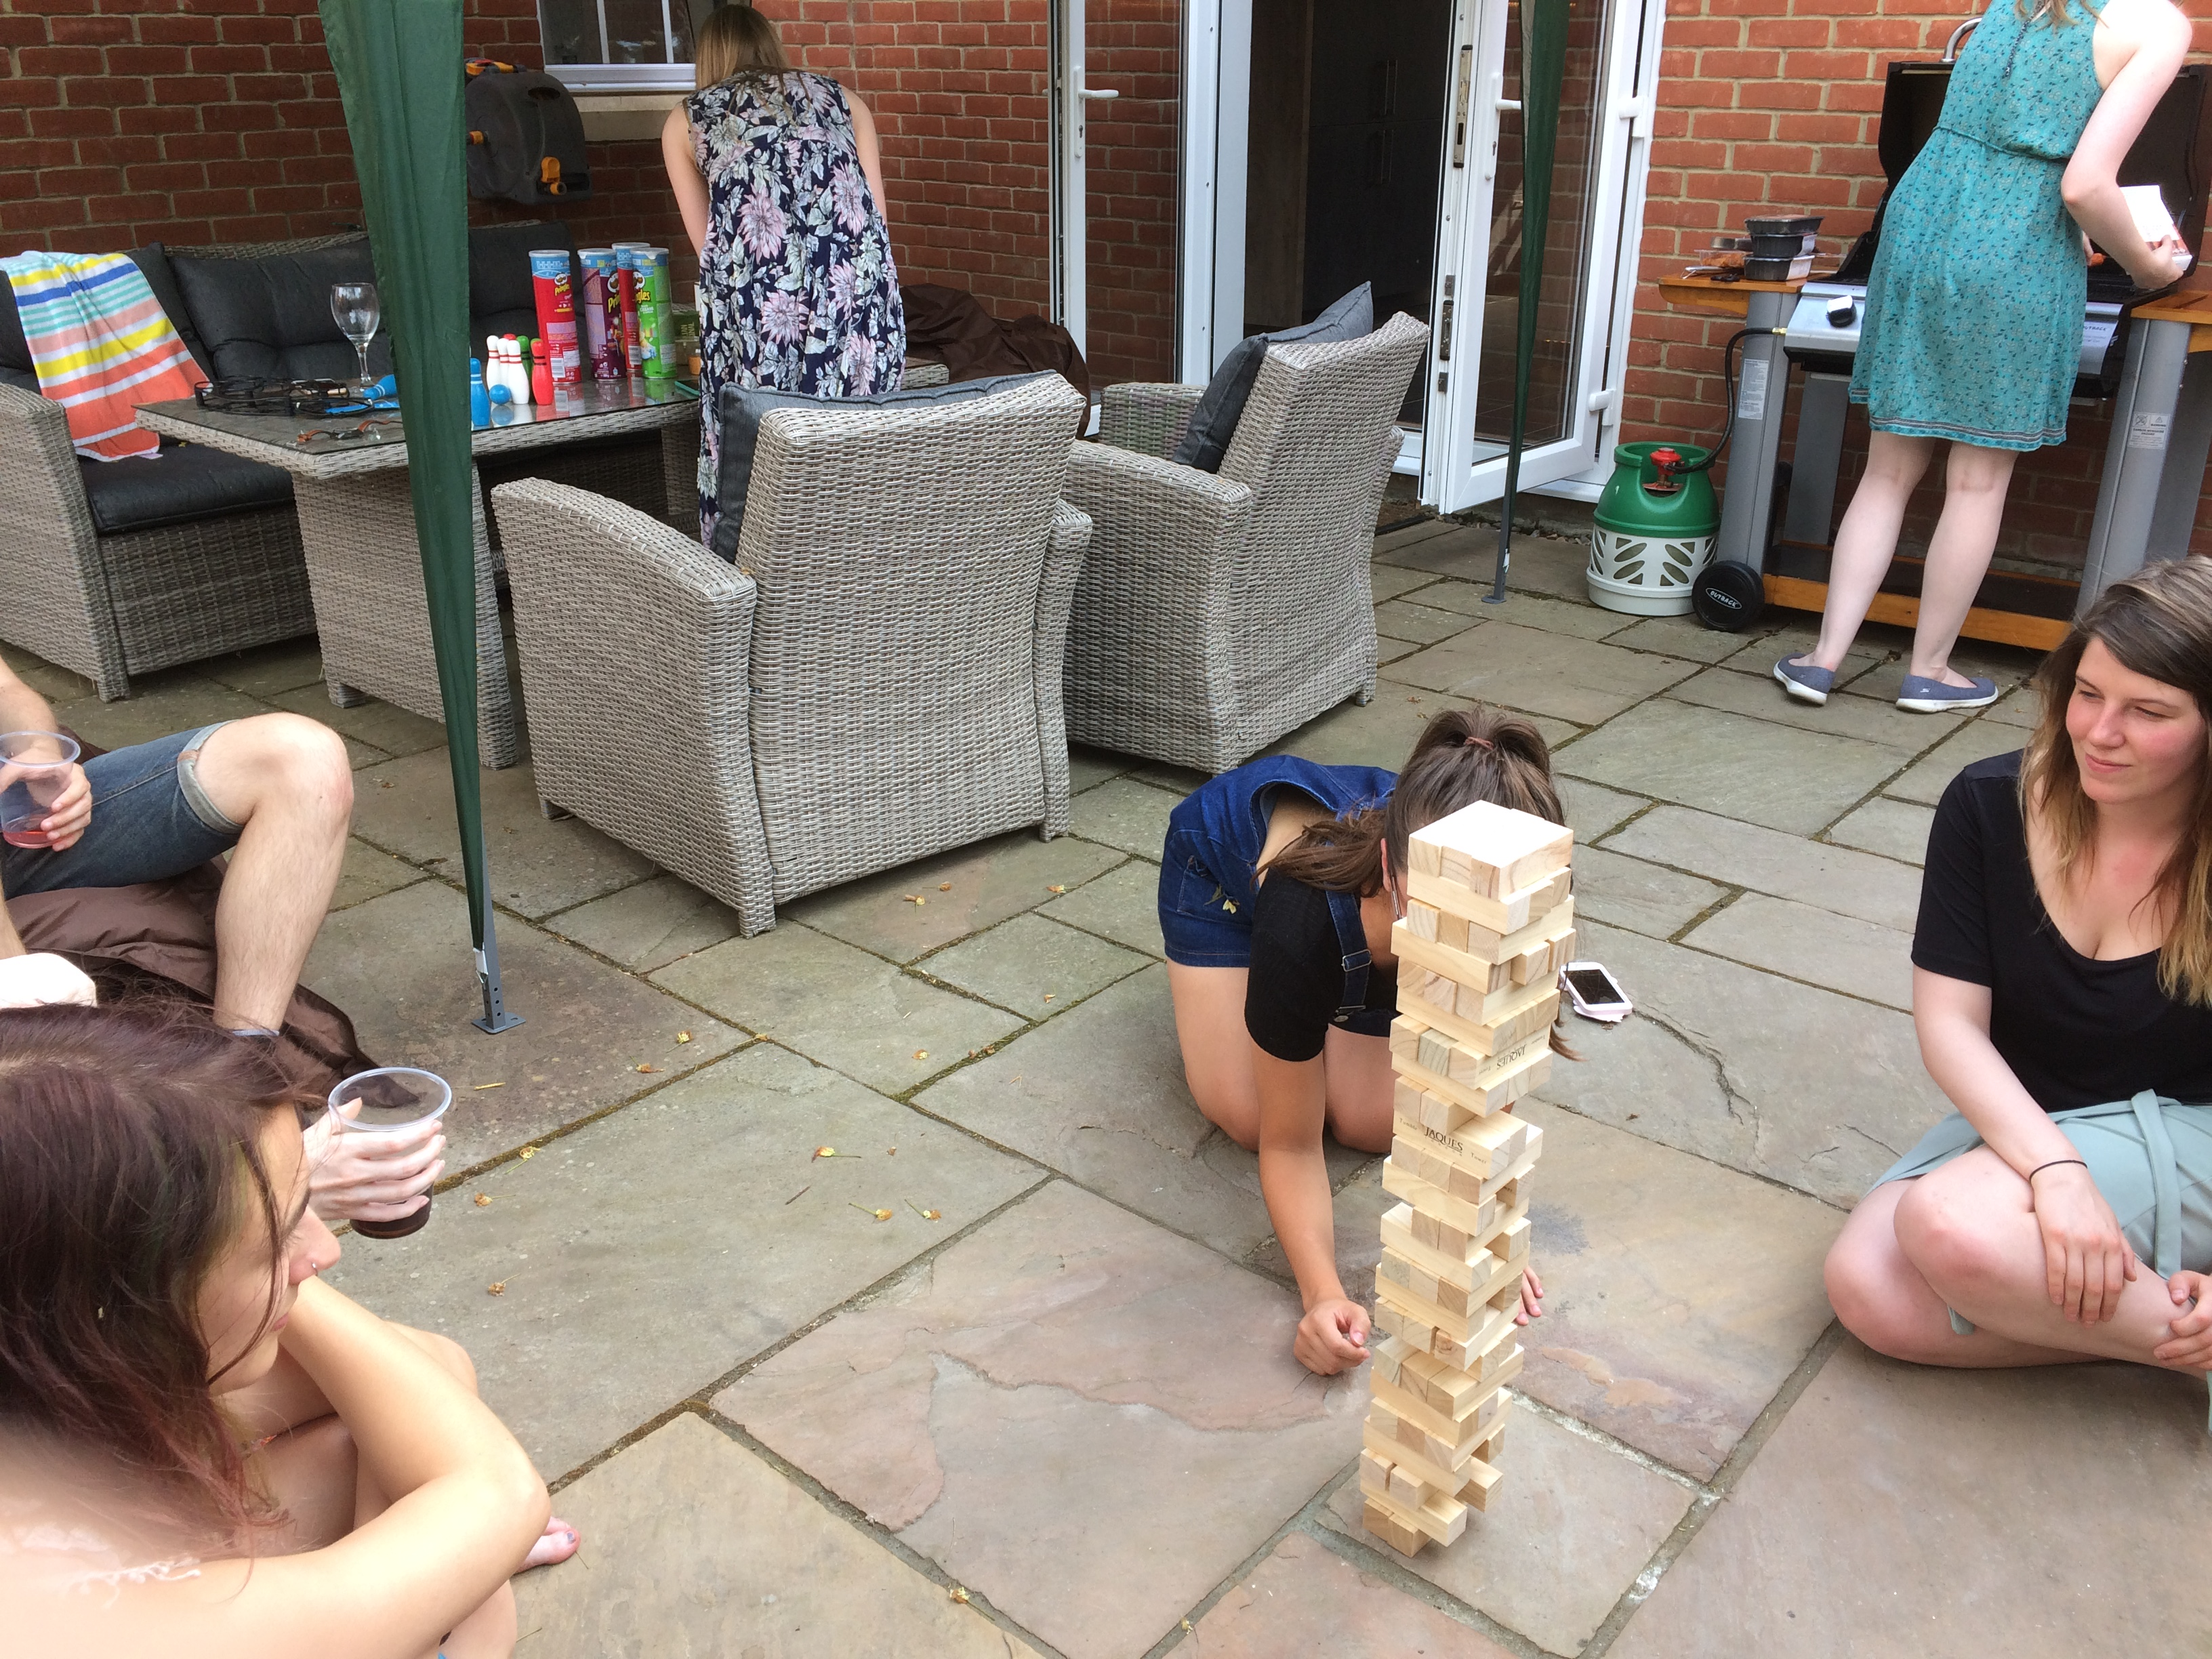 Group of people playing garden tumble tower on the patio